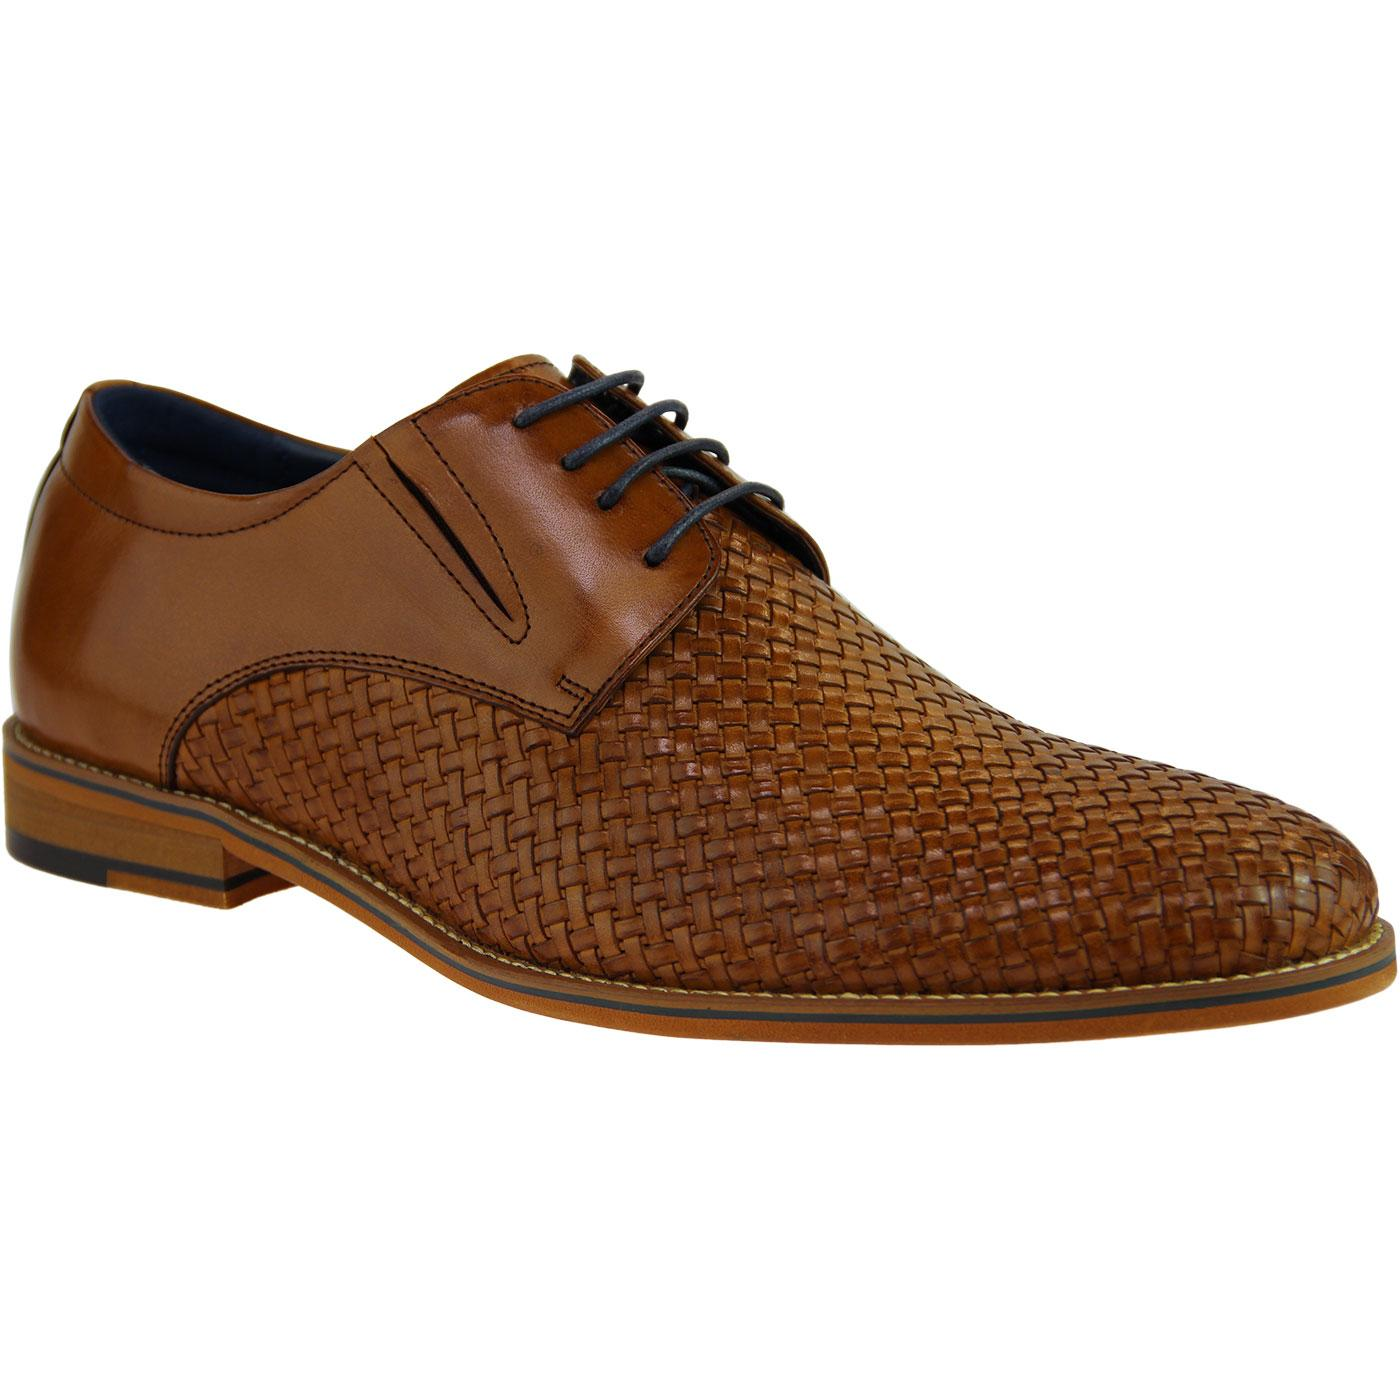 Toni SERGIO DULETTI Basket Weave Derby Shoes BROWN